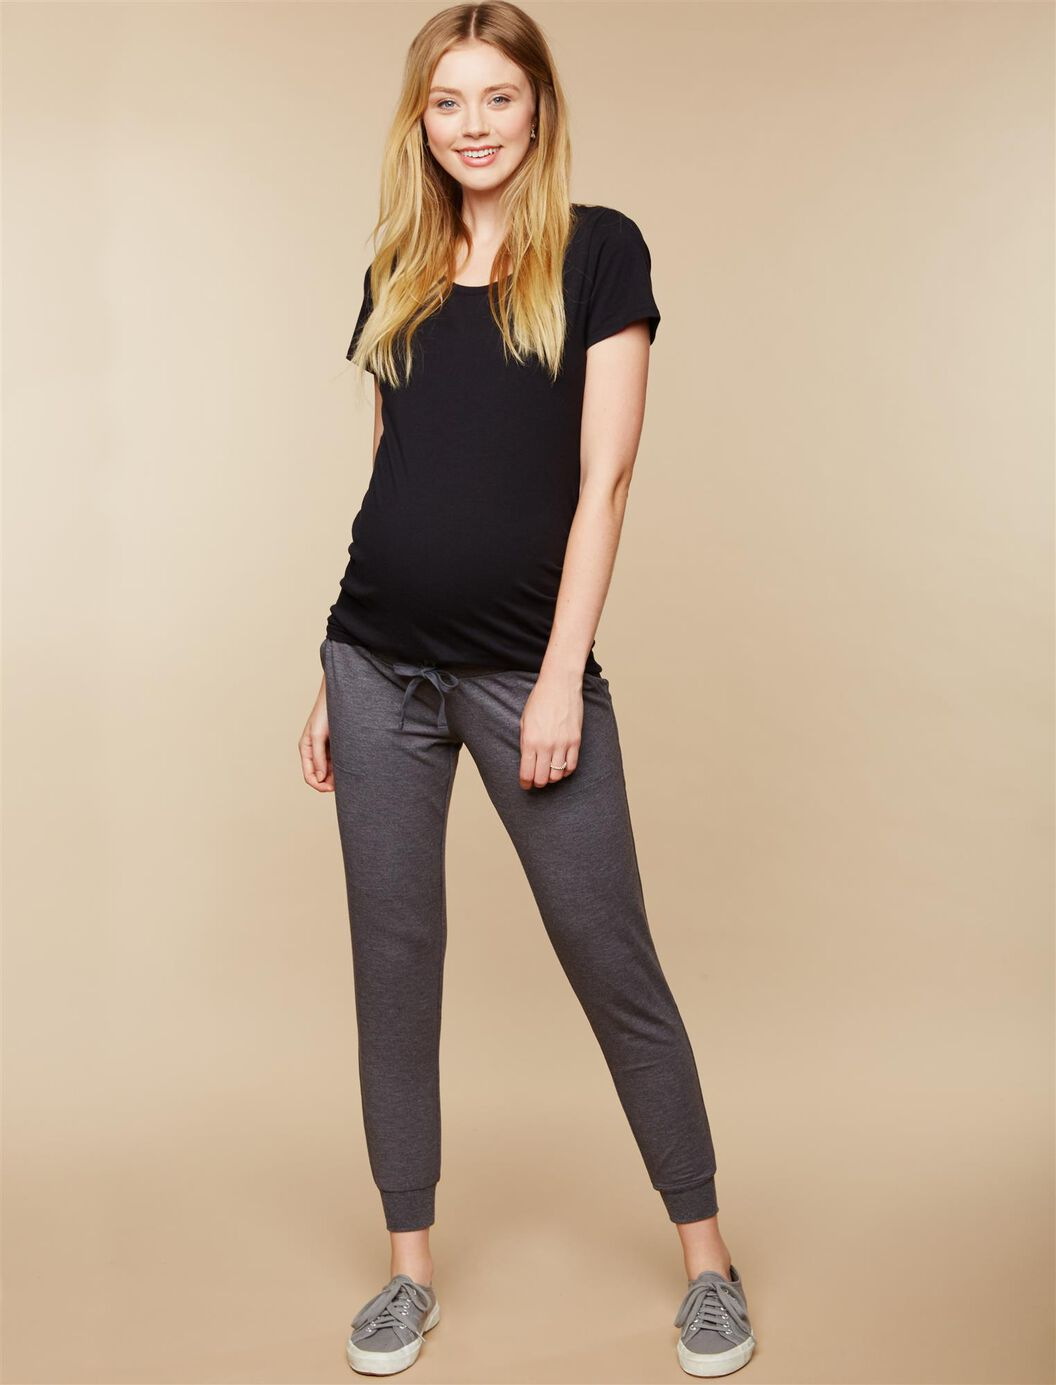 Under Belly French Terry Jogger Maternity Active Pants at Motherhood Maternity in Victor, NY | Tuggl